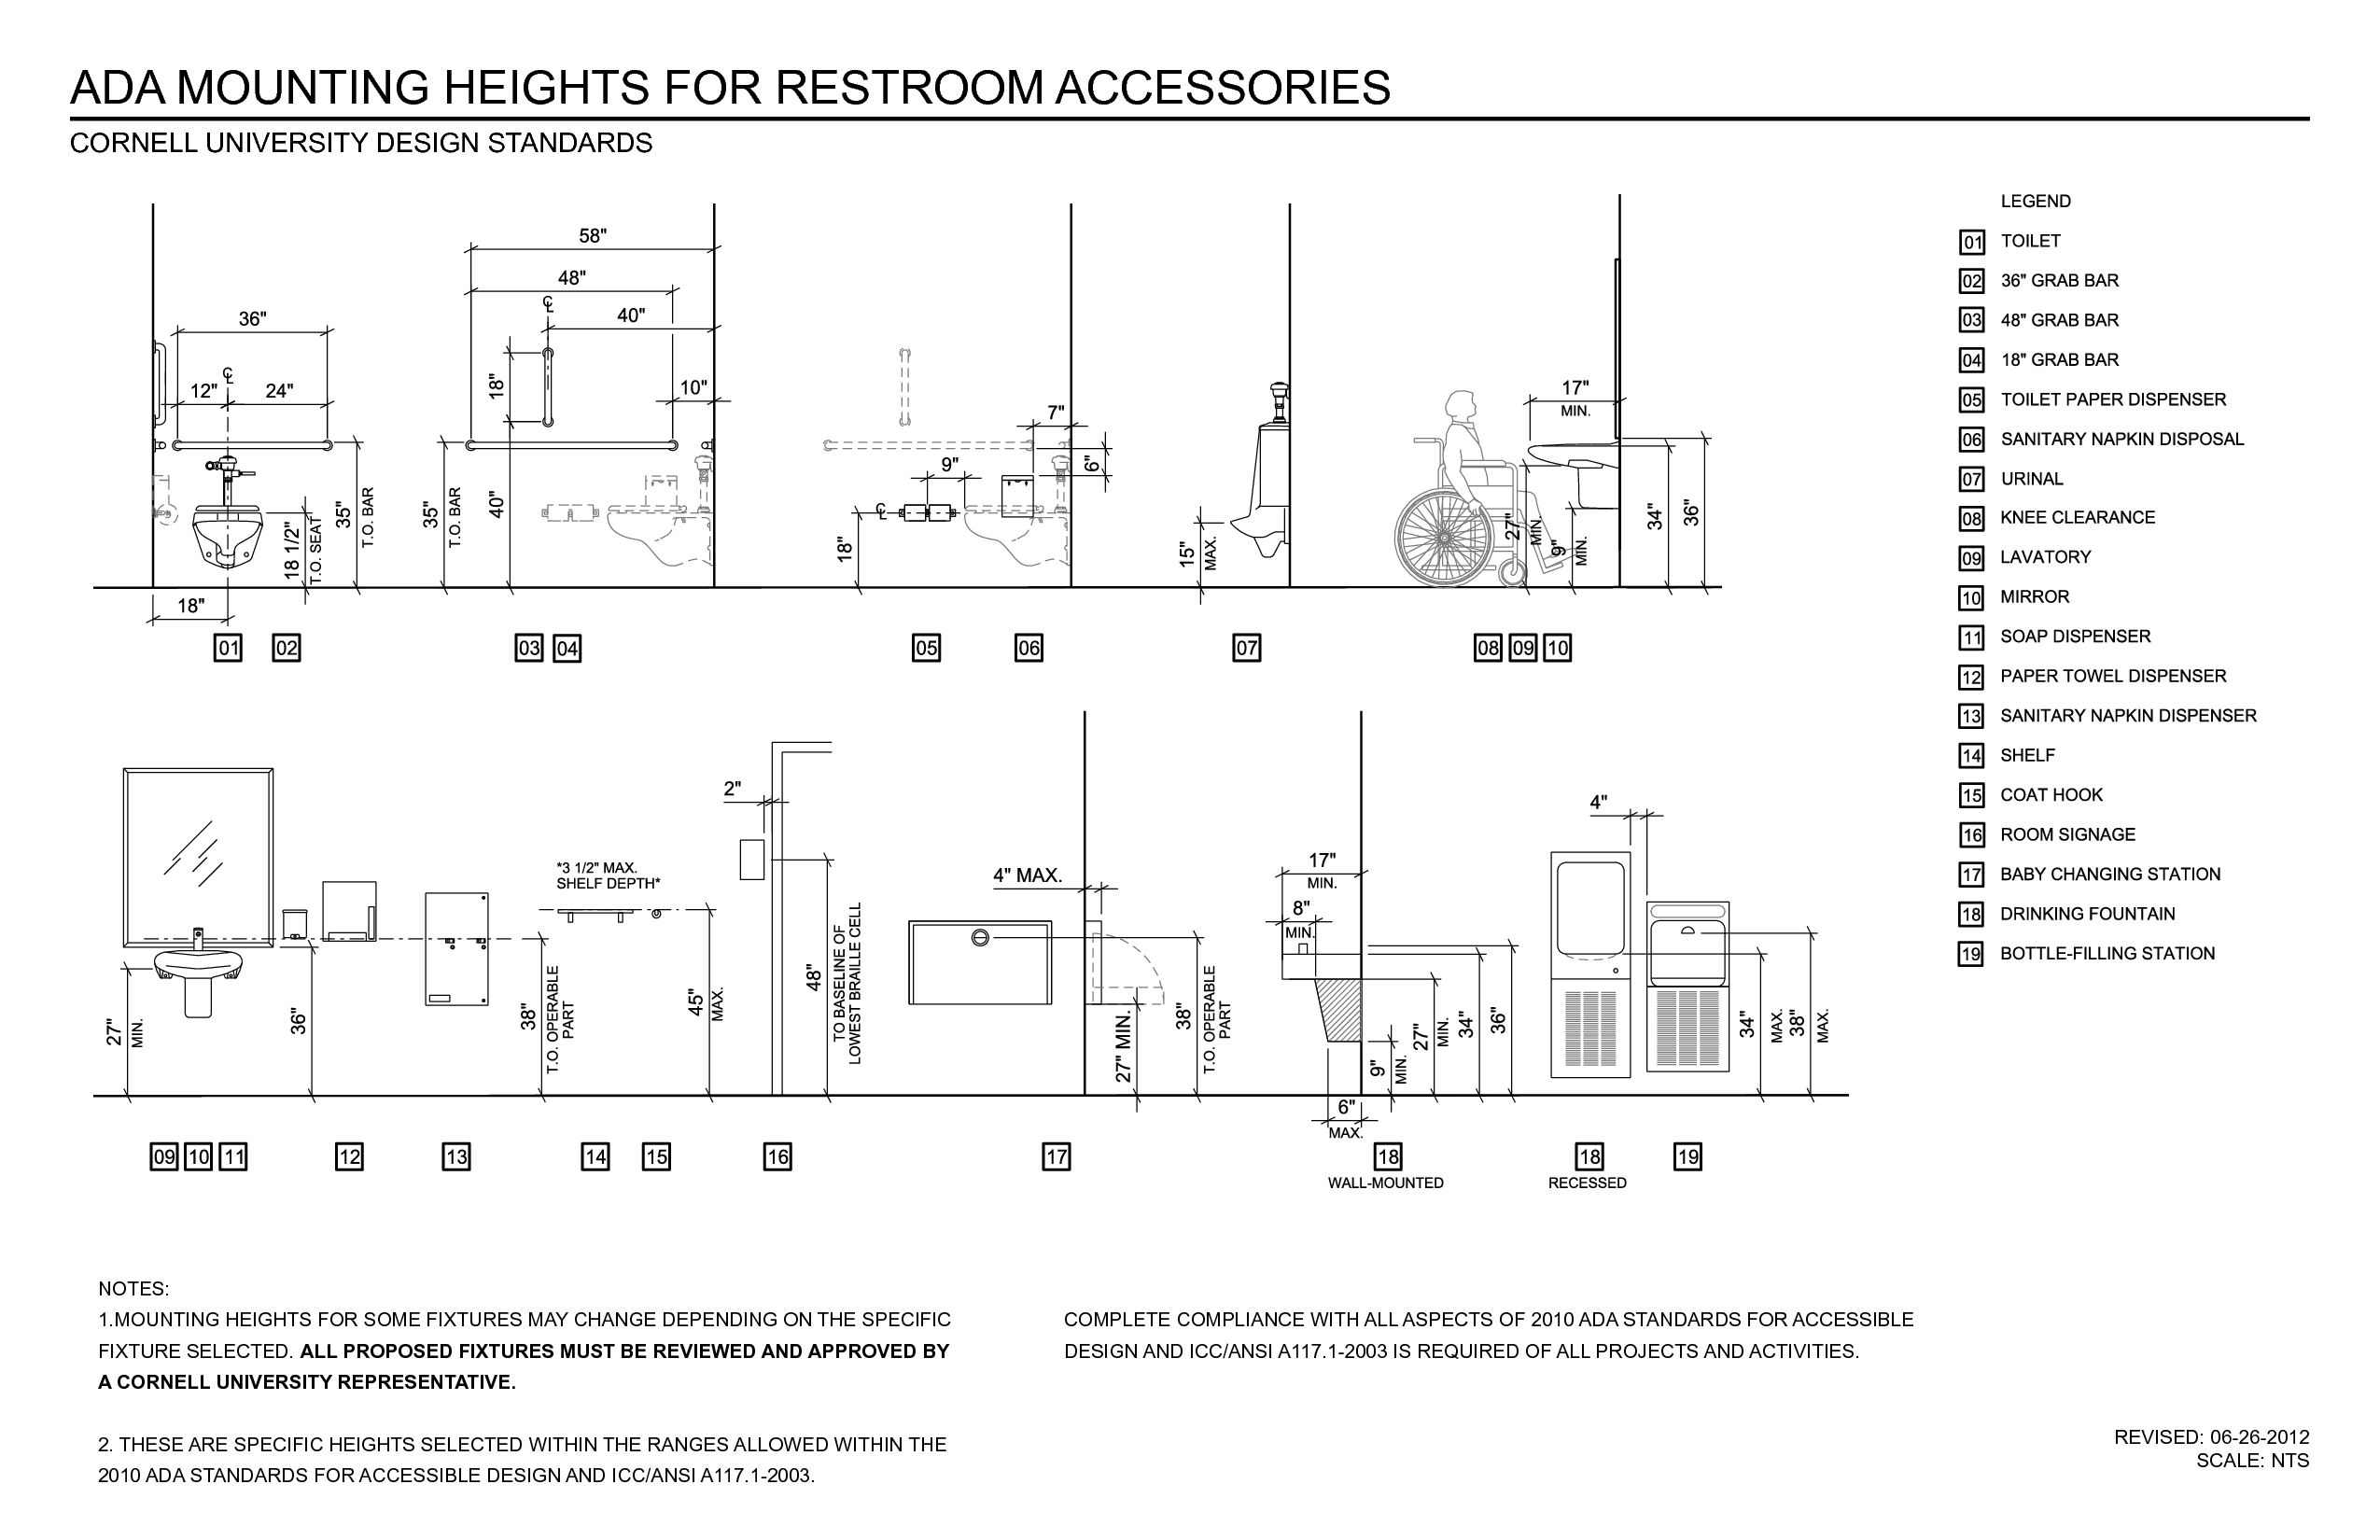 ADA Bathroom Mounting Heights | ada mounting heights for ...